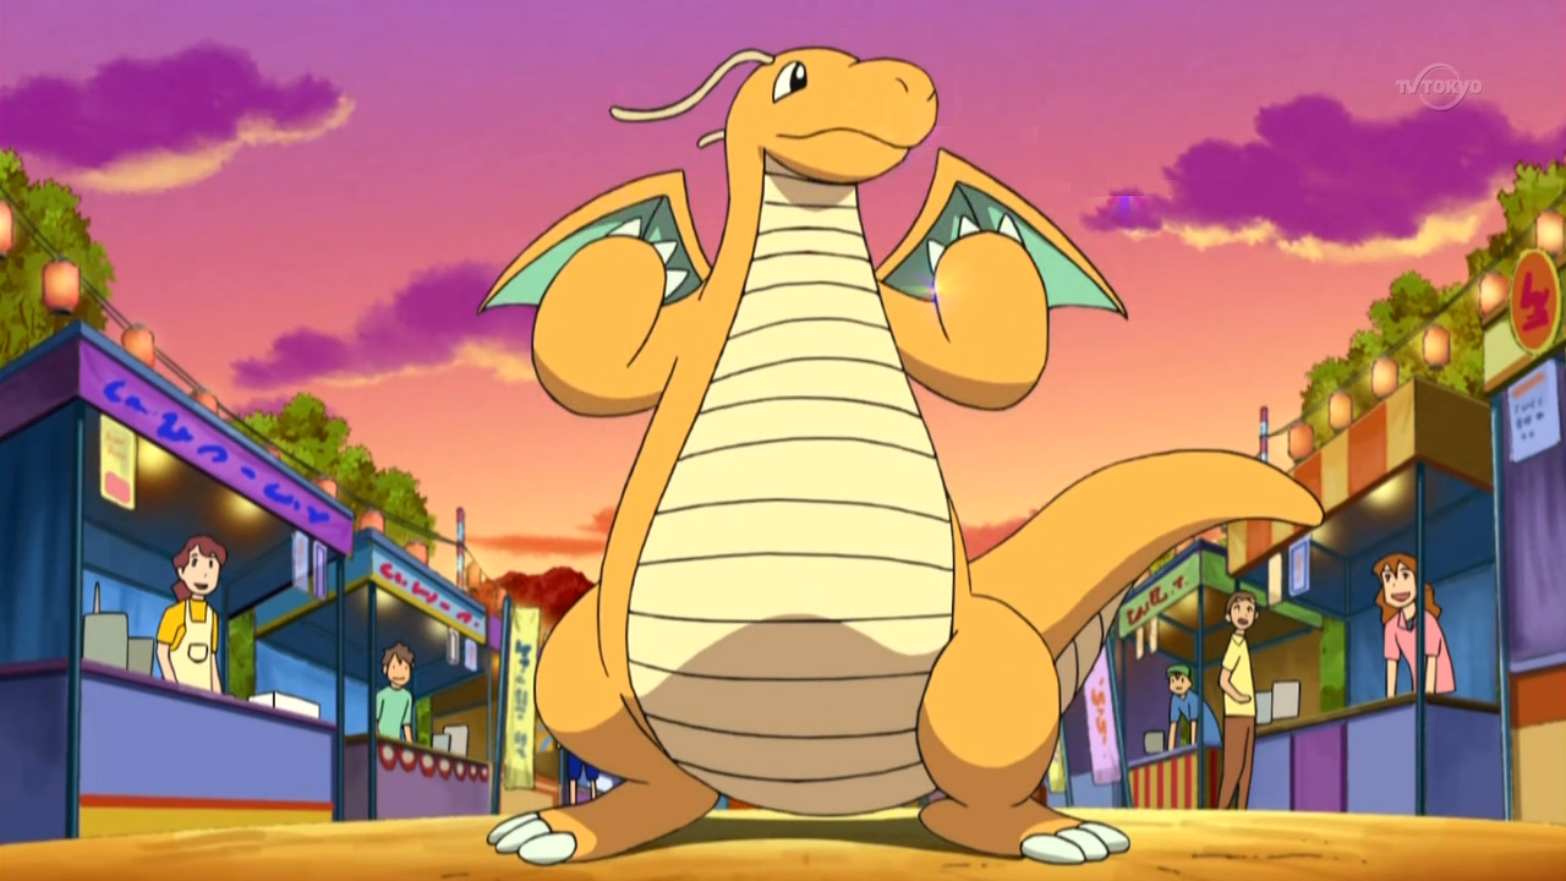 Palmer Dragonite anime